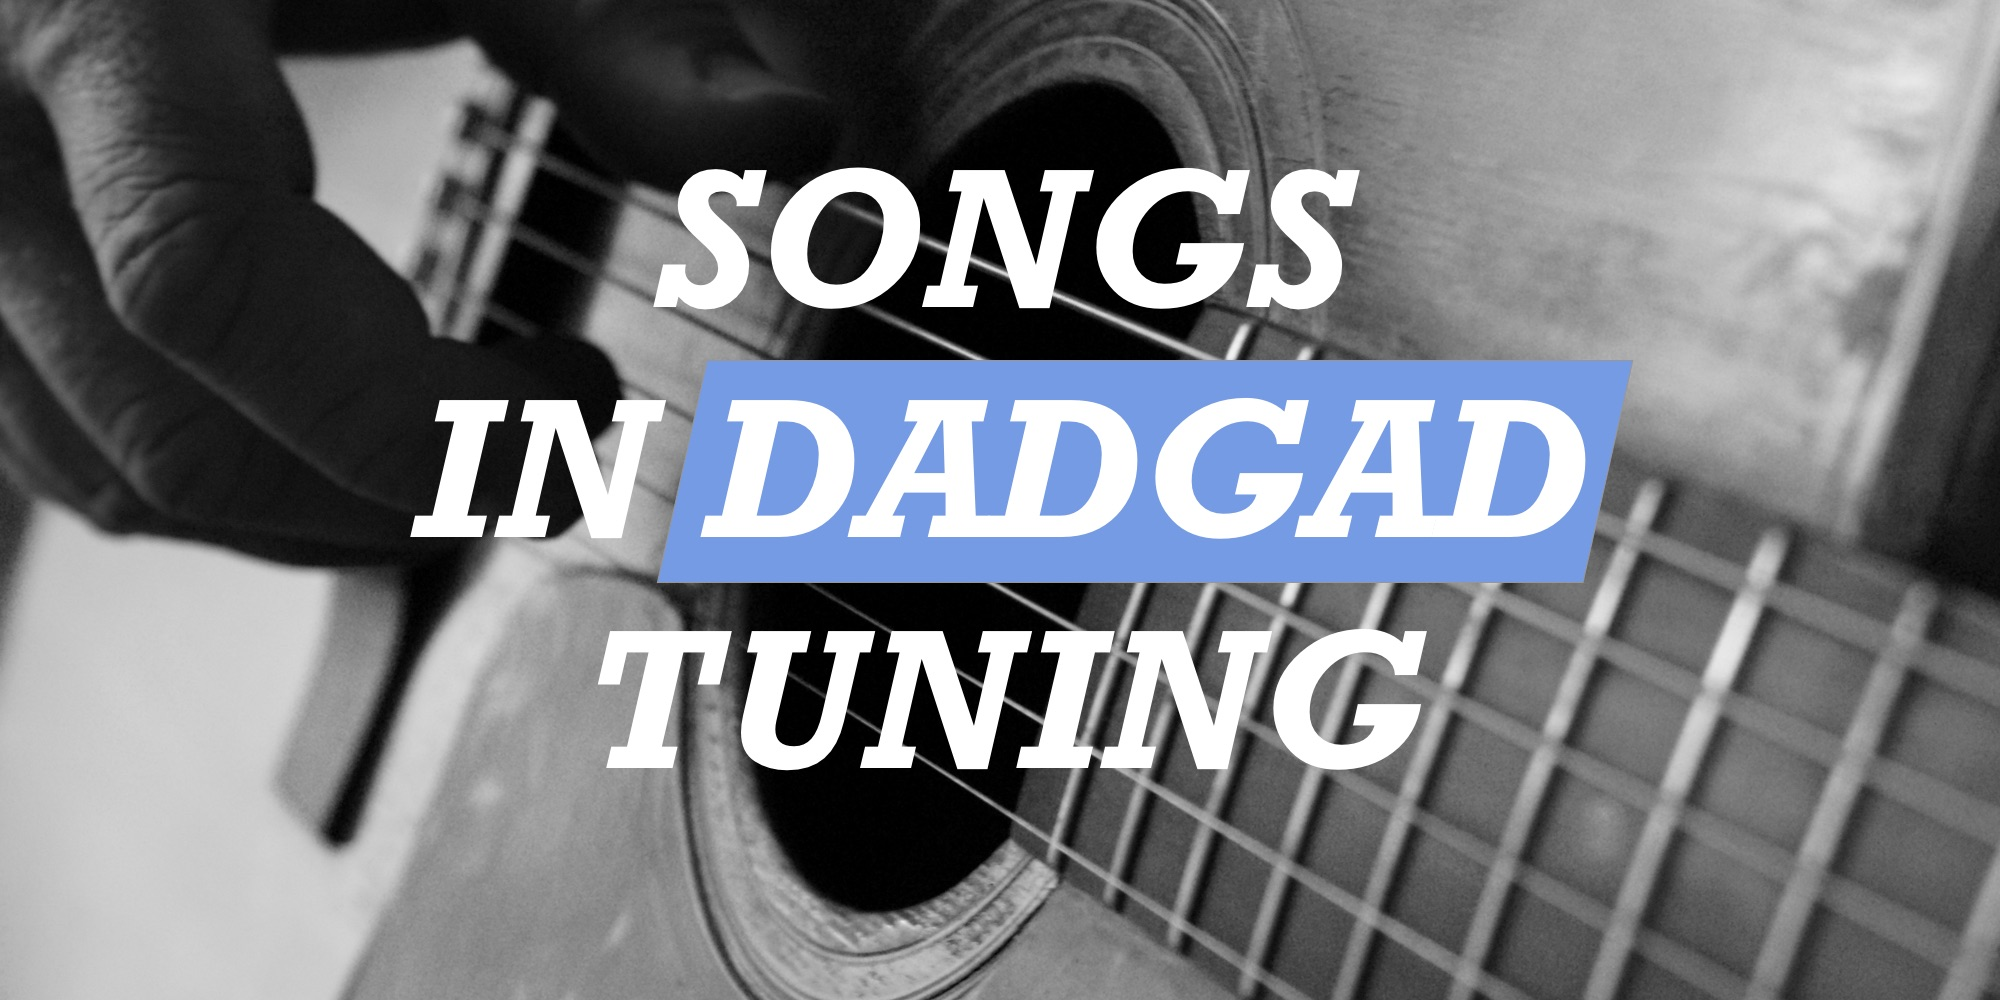 Songs In Dadgad Tuning Tab Collections At Ultimate Guitarcom